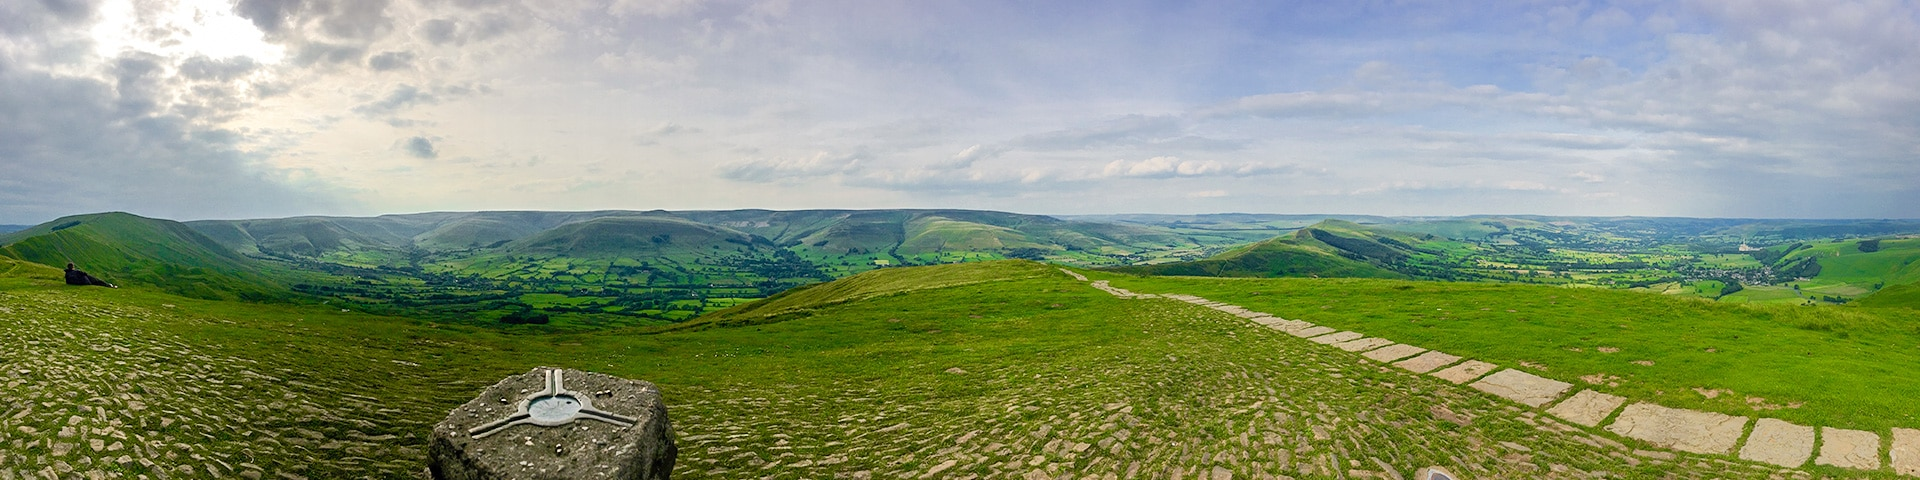 Panorama from the Mam Tor Circular hike in Peak District, England